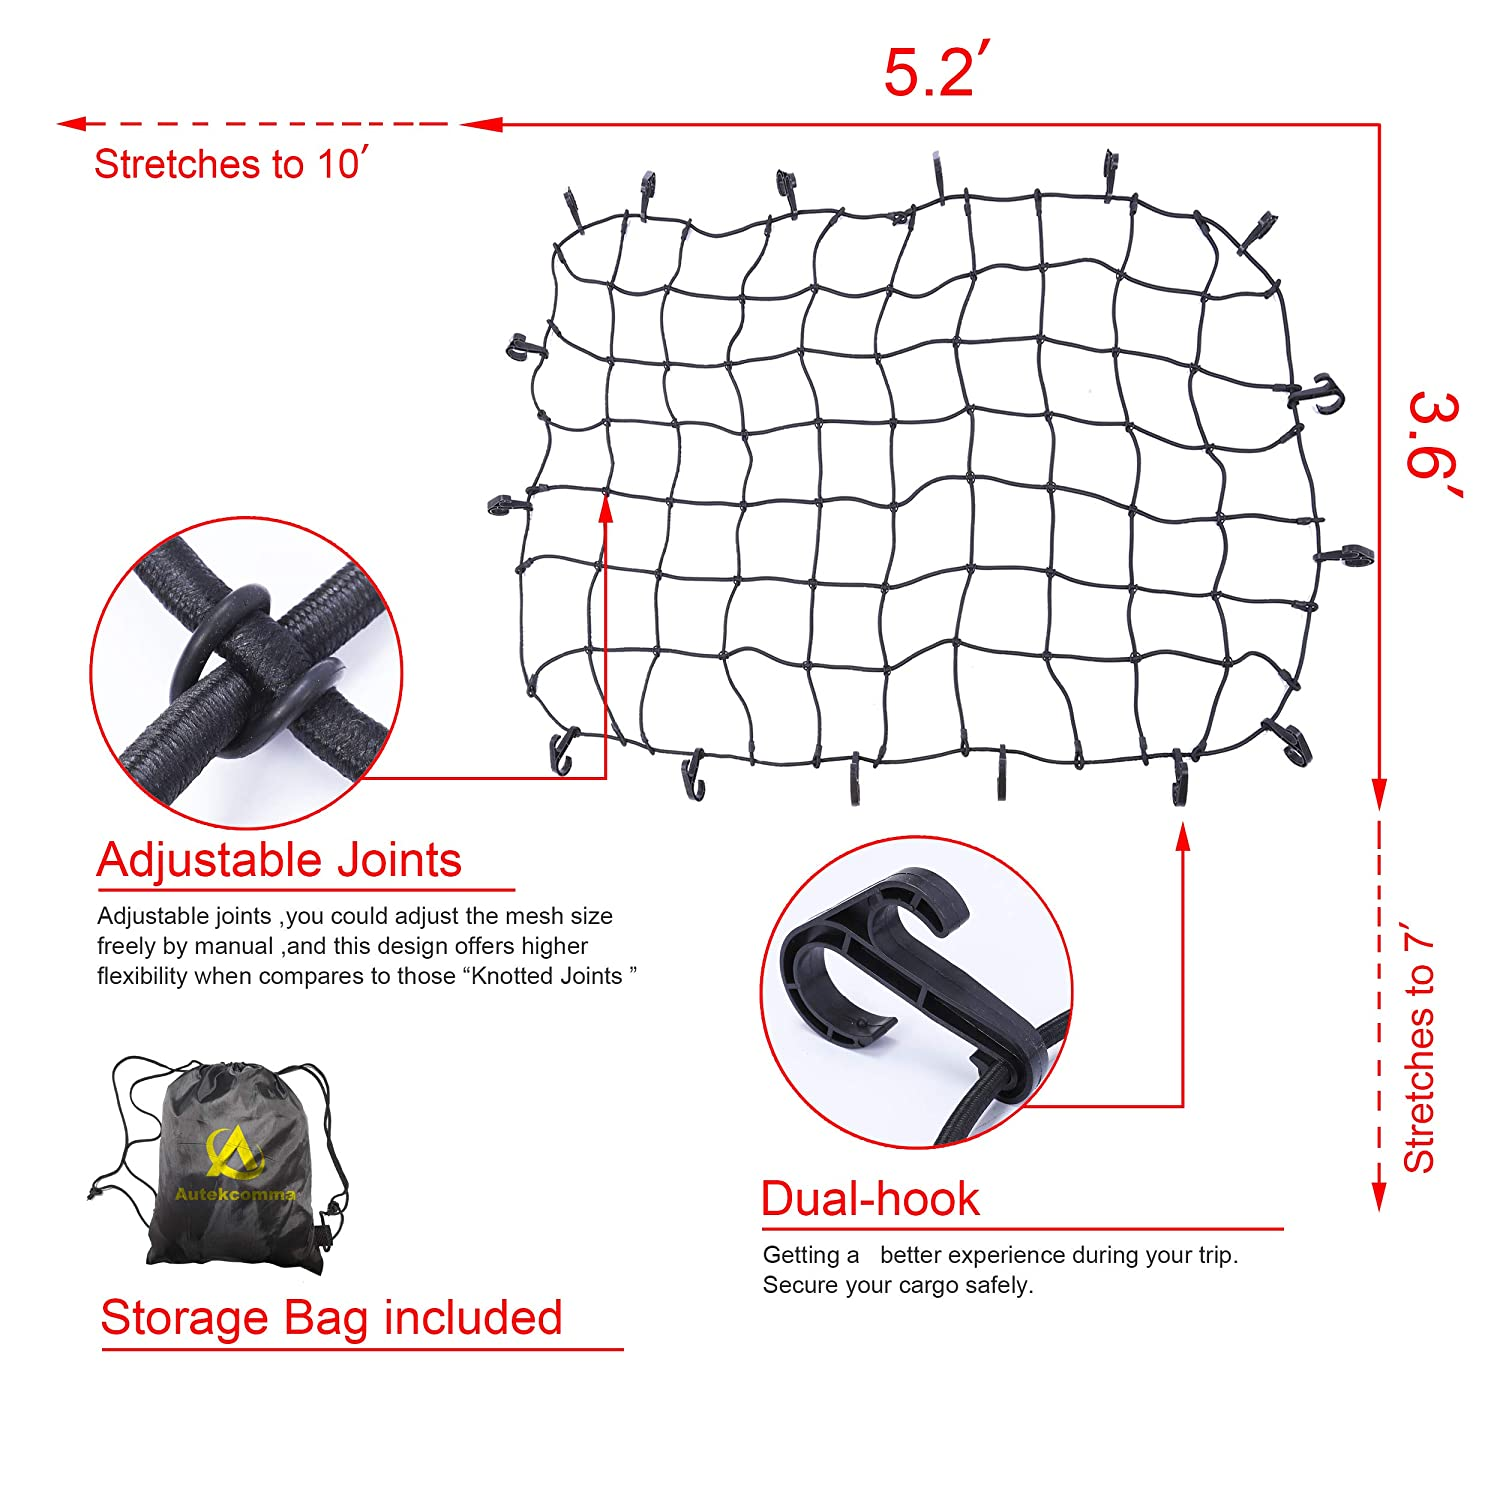 Autekcomma 3/'x4/' Stretches to 6/'x8/'.Heavy Duty Oversized Cargo net 4X4 Mesh 7MM Bungee Cord .12 x Aluminum Tangle 3x4 Feet Free D Carabiners .24 x ABS Hooks for Pickup Bed Truck Bed